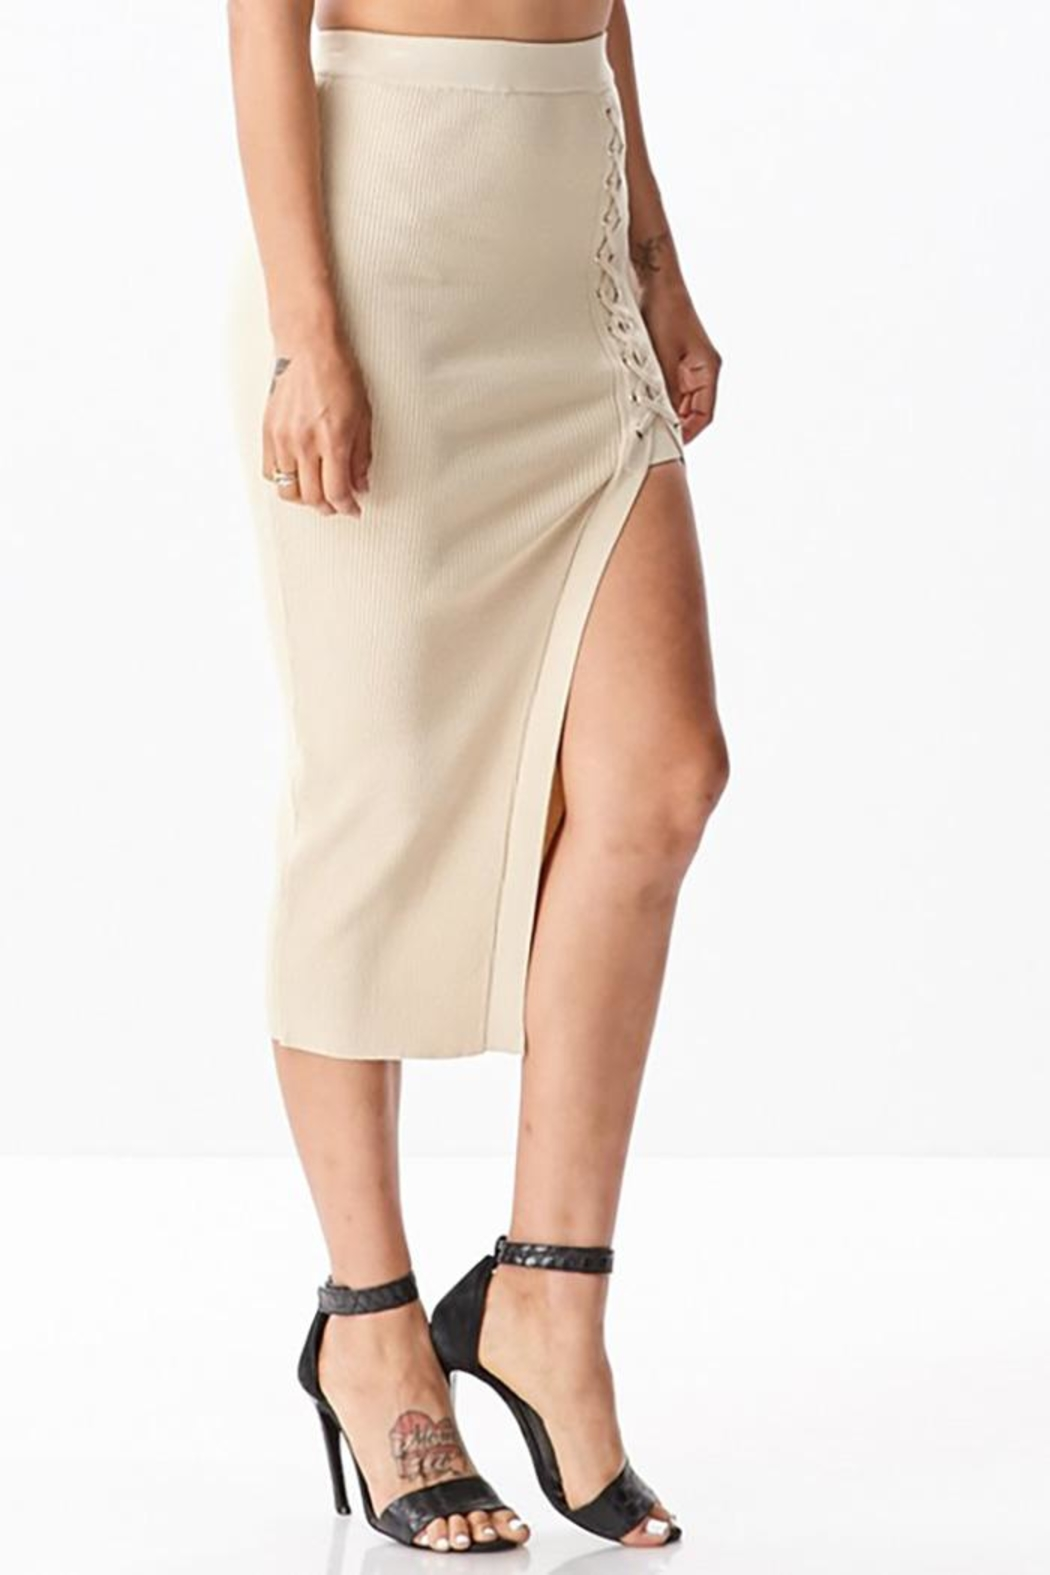 hera collection Side Lattice Midi-Skirt - Side Cropped Image